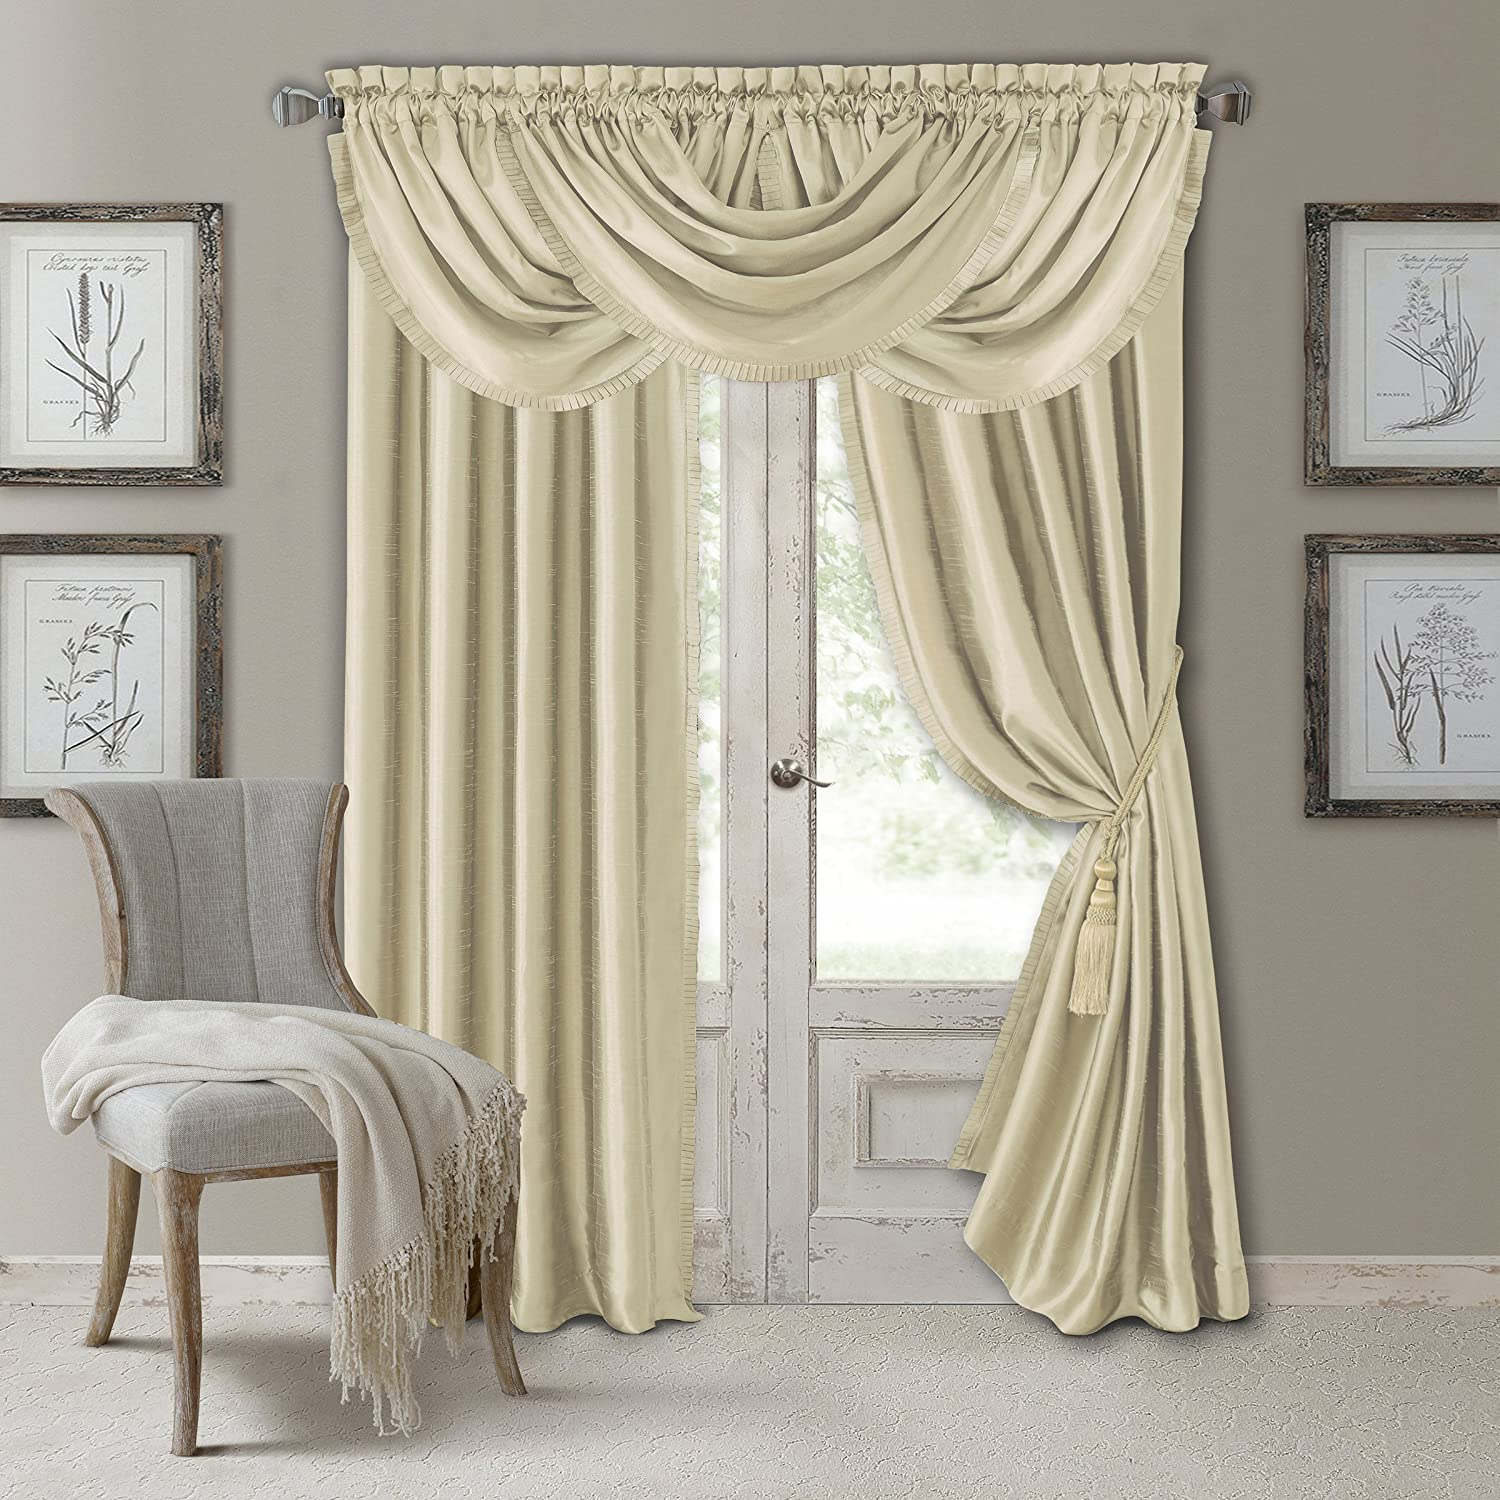 "Elrene Home Fashions Versailles Faux Silk Room Darkening & Energy Efficient Lined Rod Pocket Window Curtain Drape Pleated Solid Panel, 52"" x 84"" (1, Ivory"